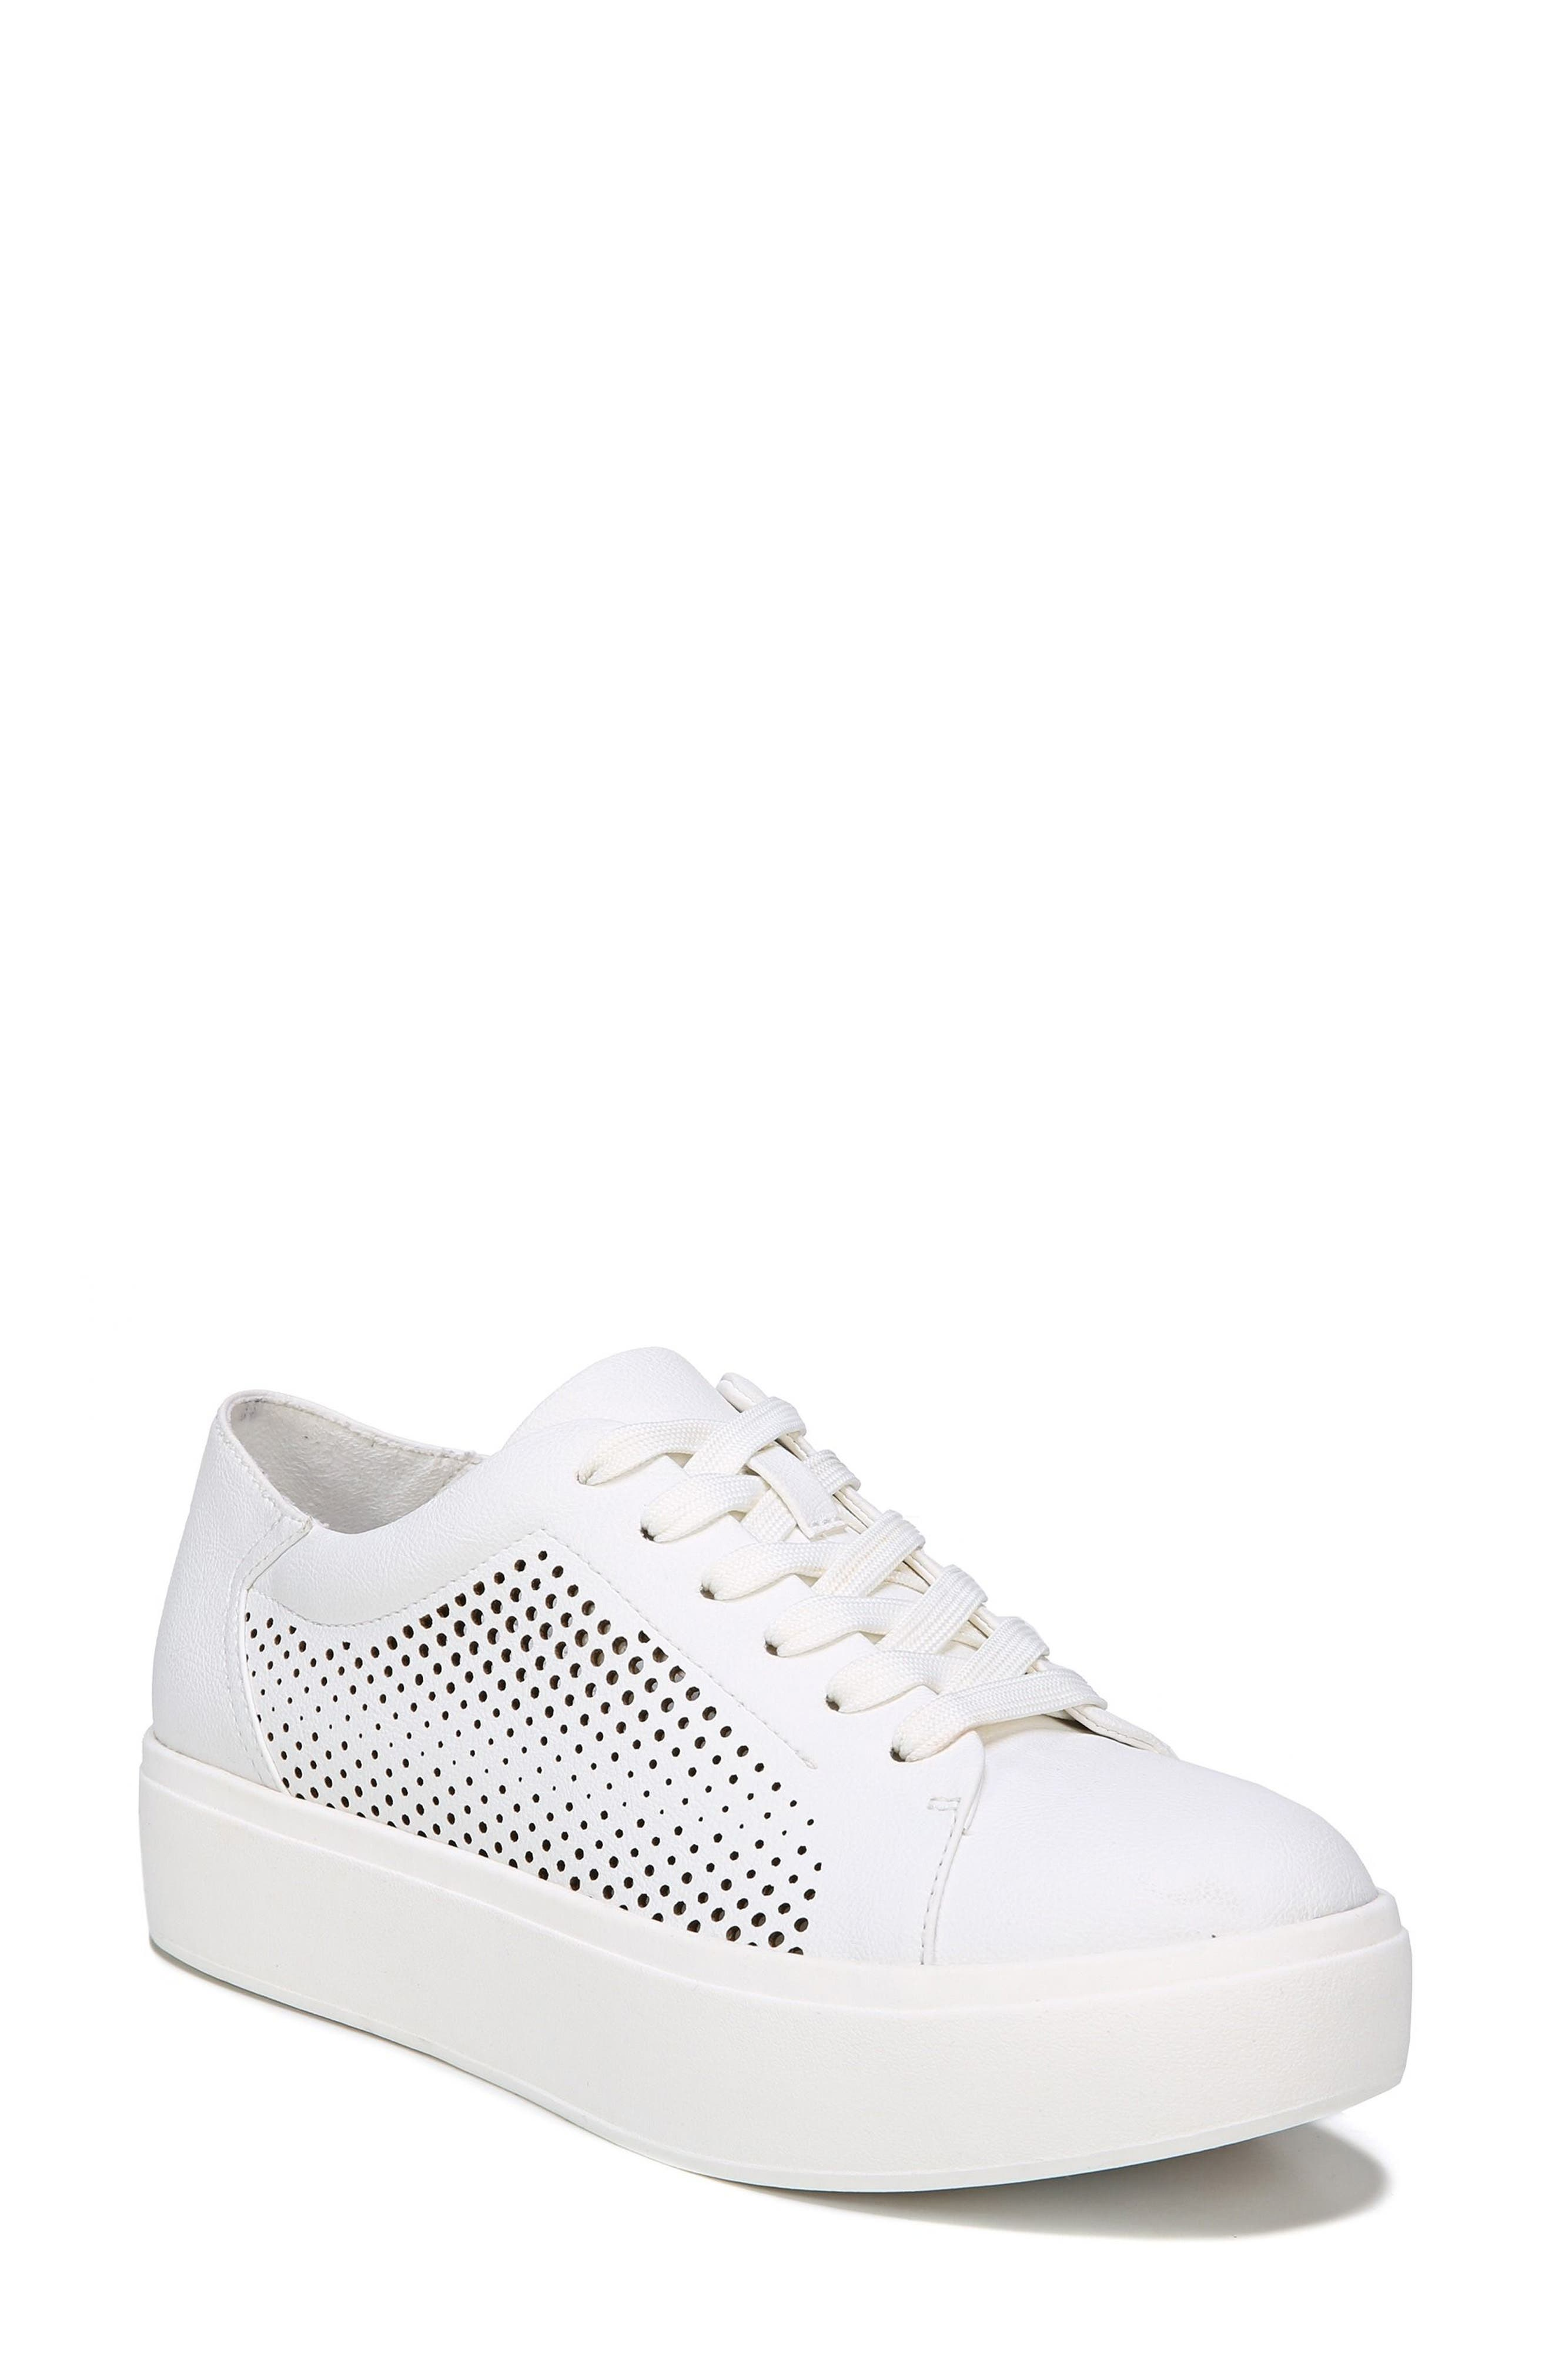 Alternate Image 1 Selected - Dr. Scholl's Kinney Platform Sneaker (Women)